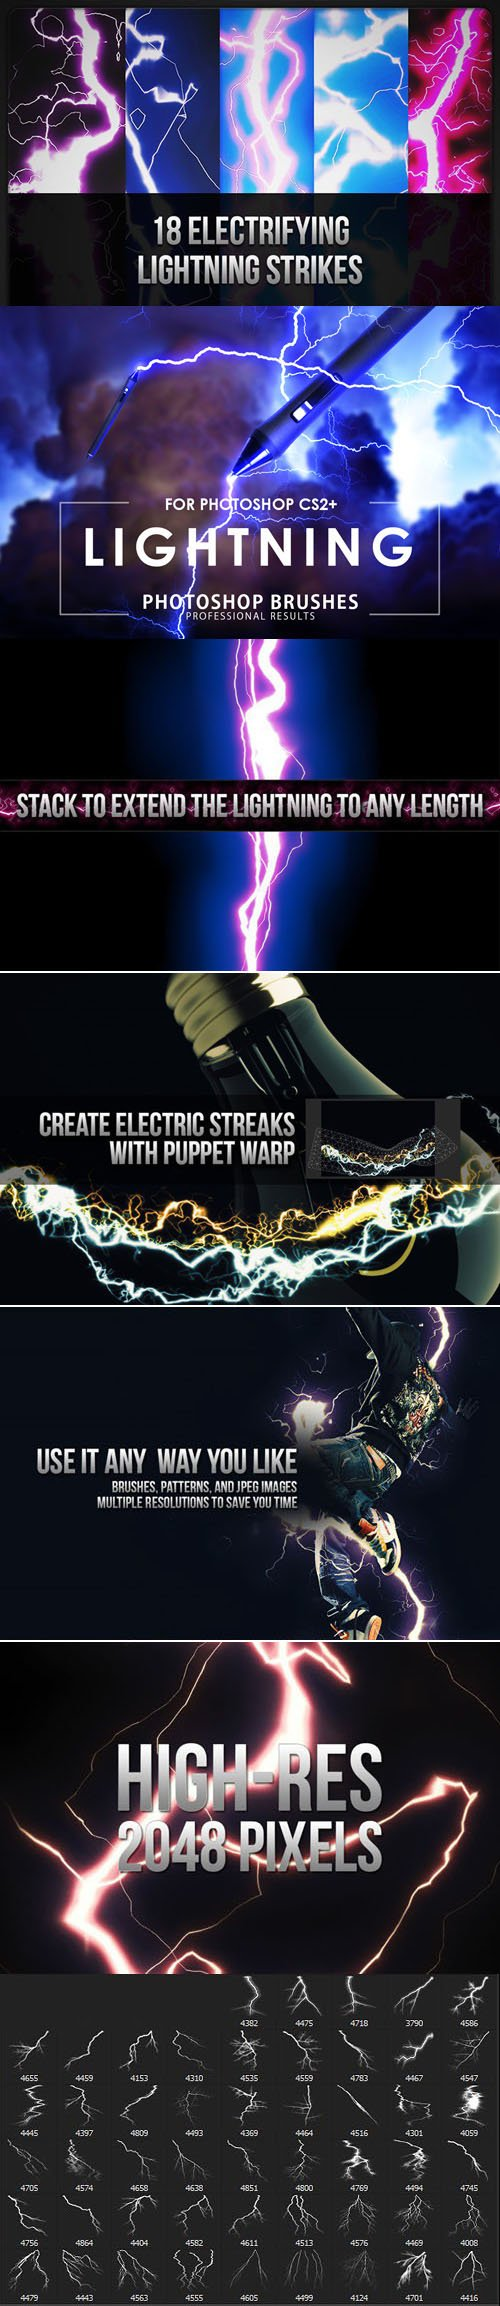 20 Electrifying Lightning Strikes Brushes for Photoshop